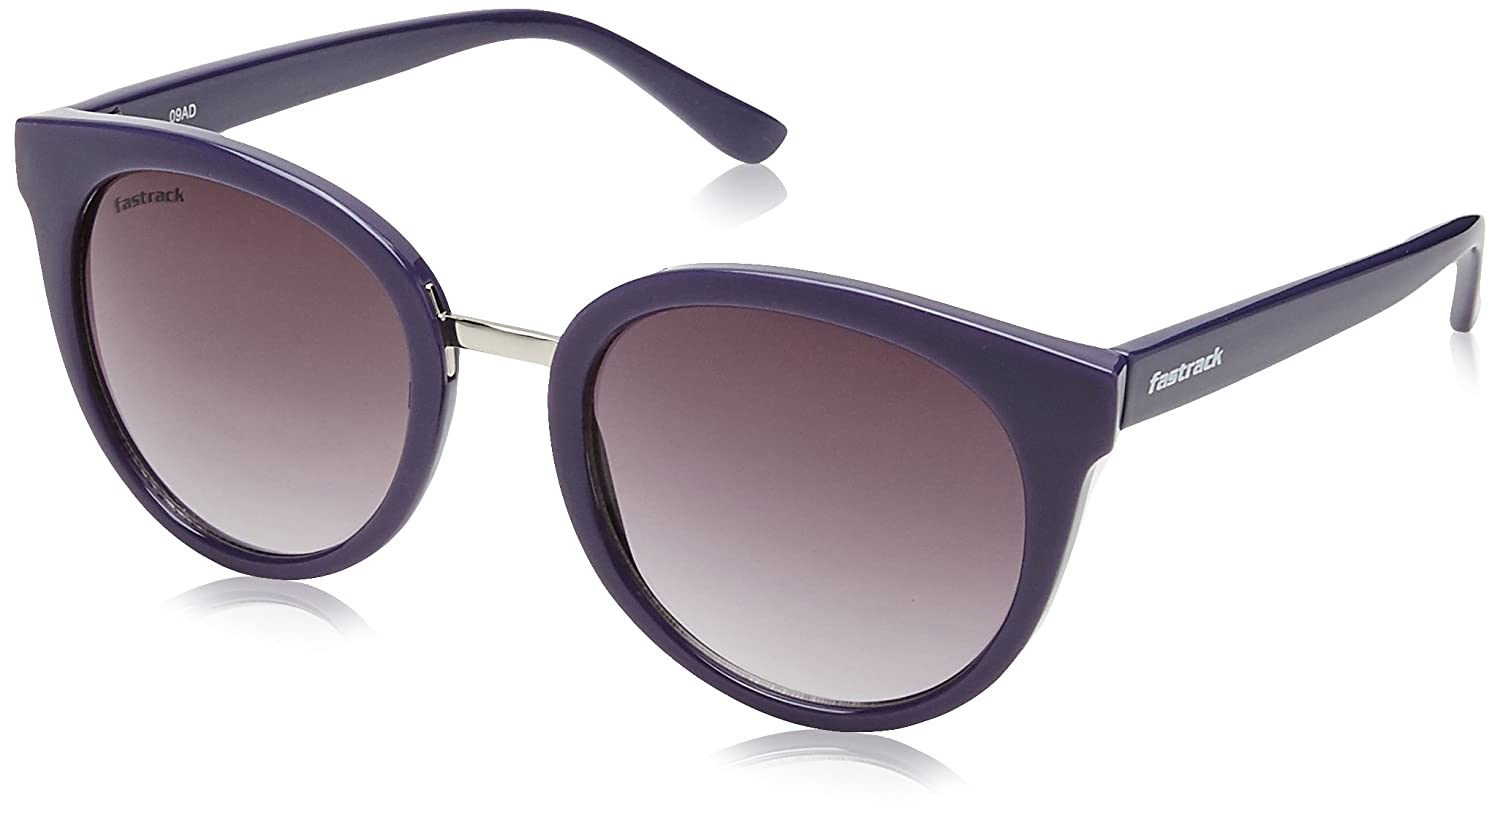 Fastrack UV Protected Oval Women's Sunglasses